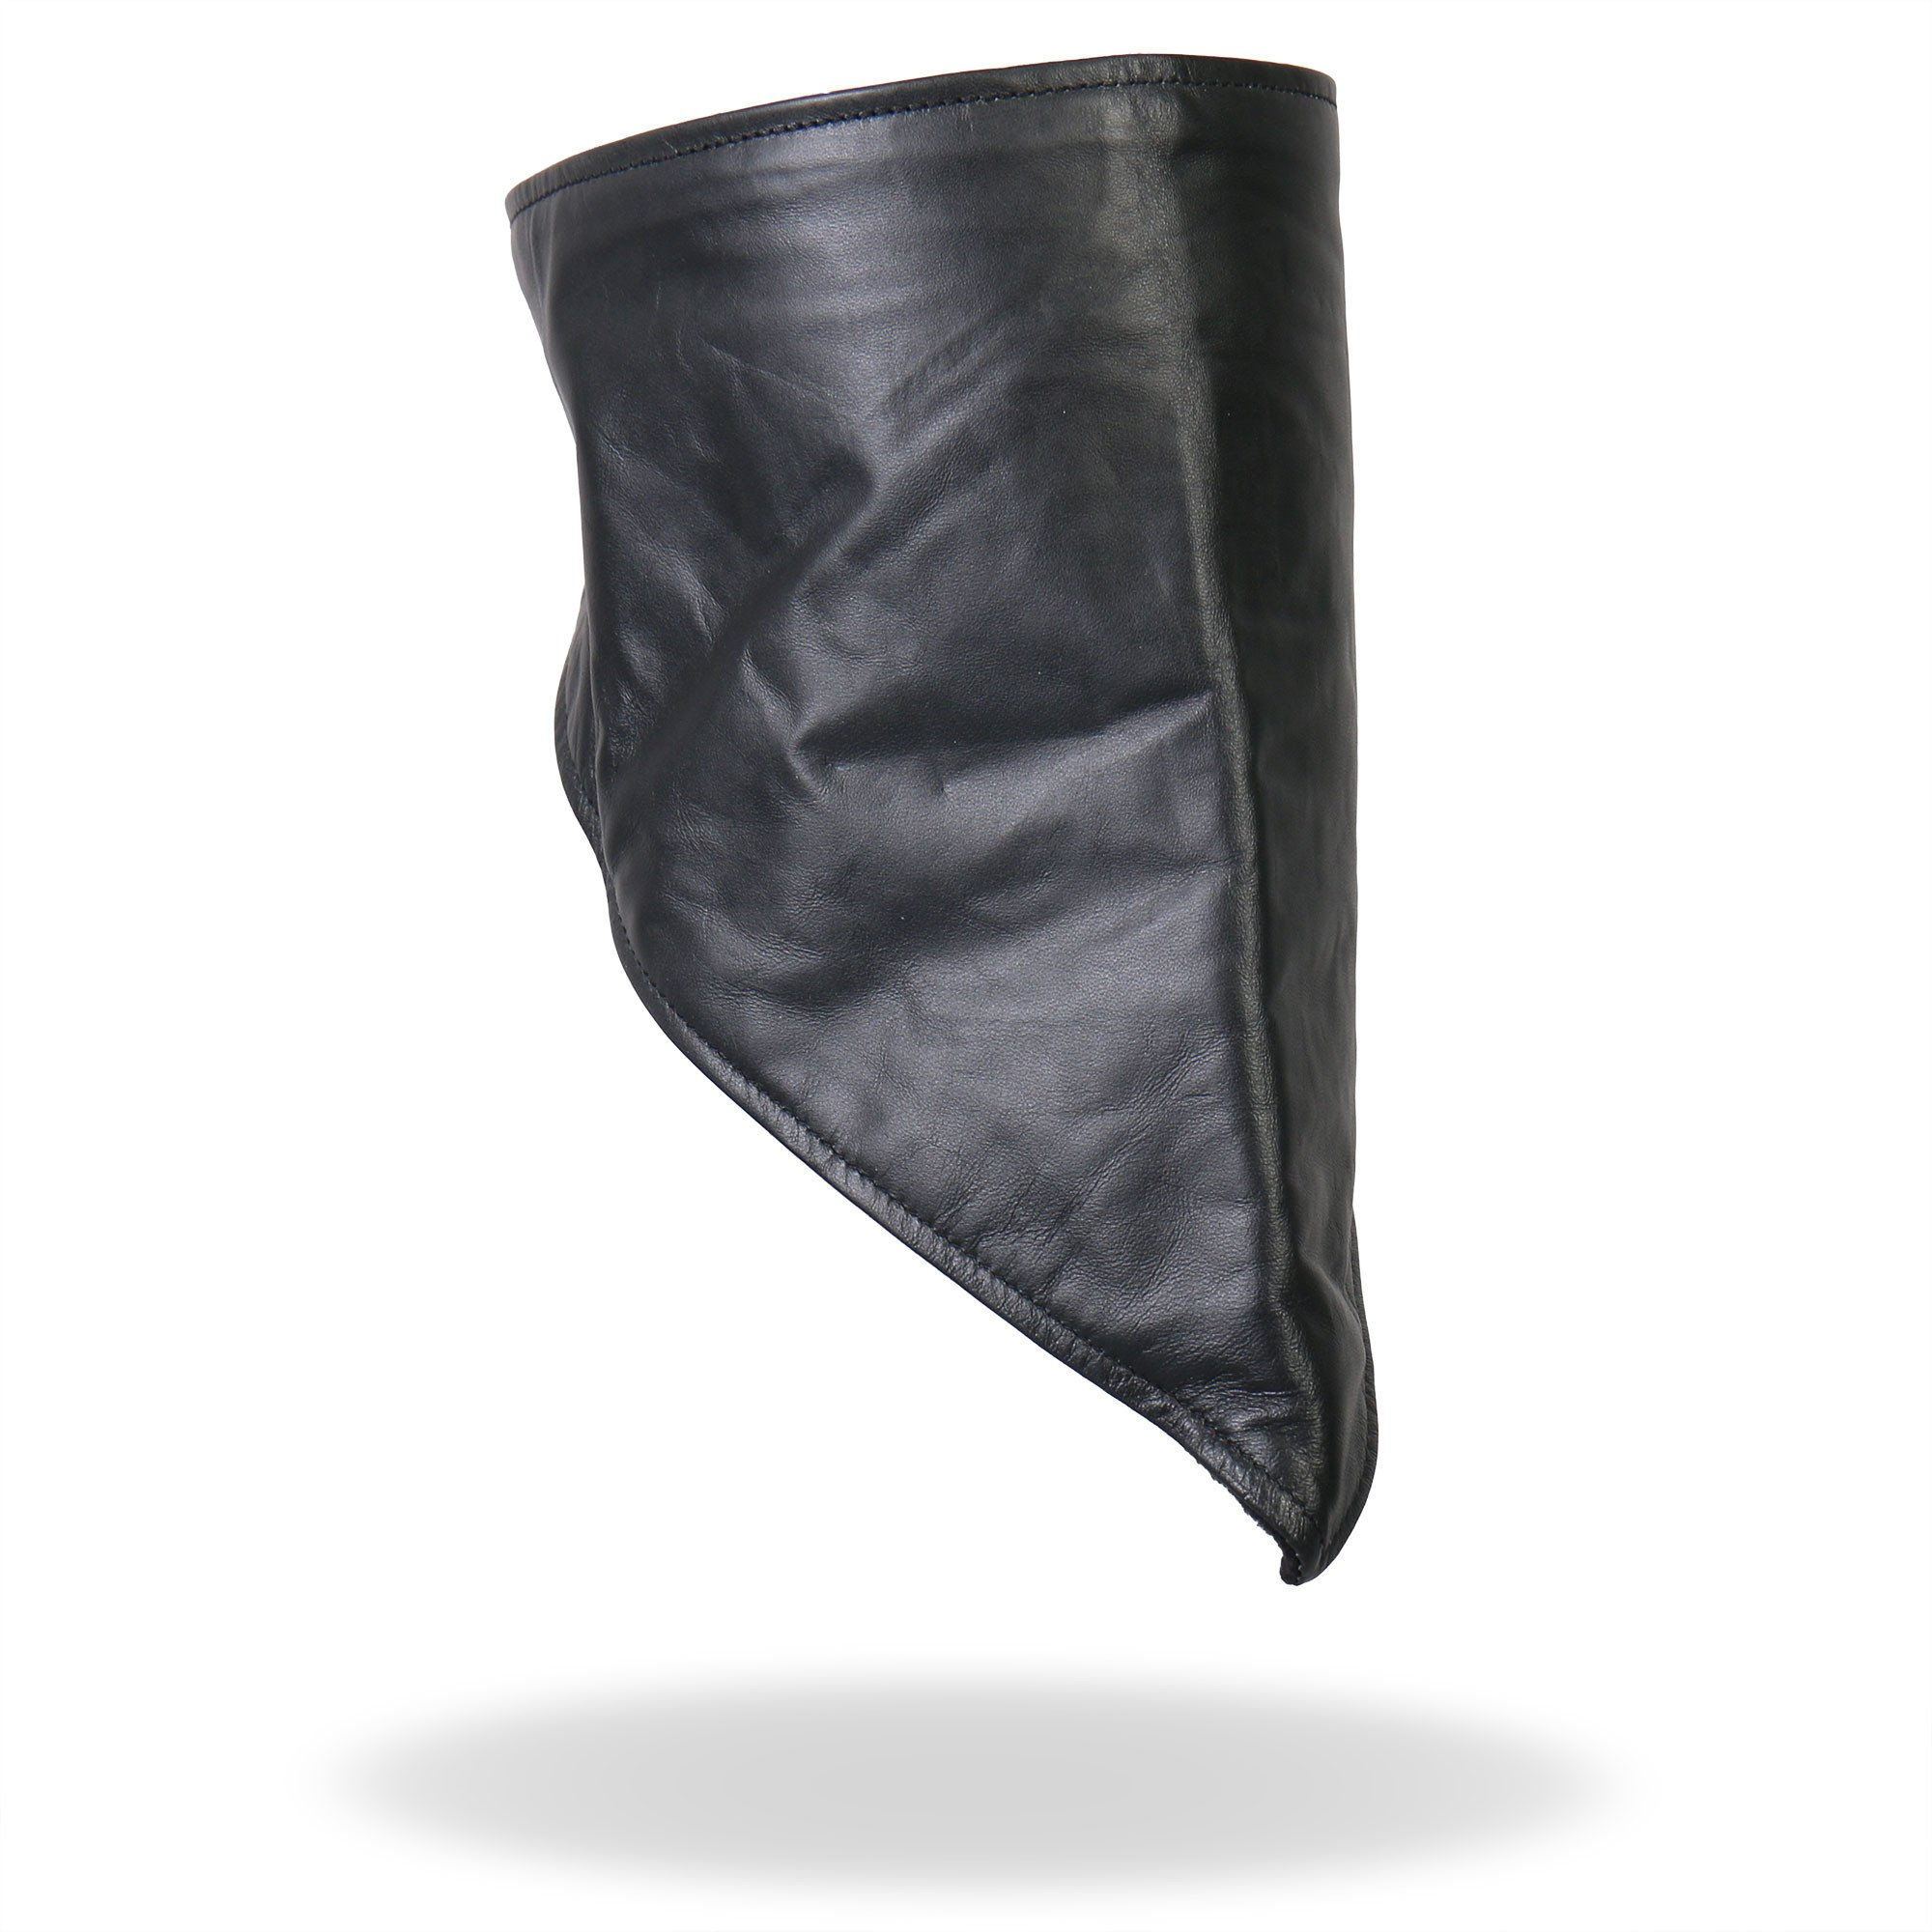 Hot Leathers Leather Neck Warmer with Fleece Lining (Black) by Hot Leathers